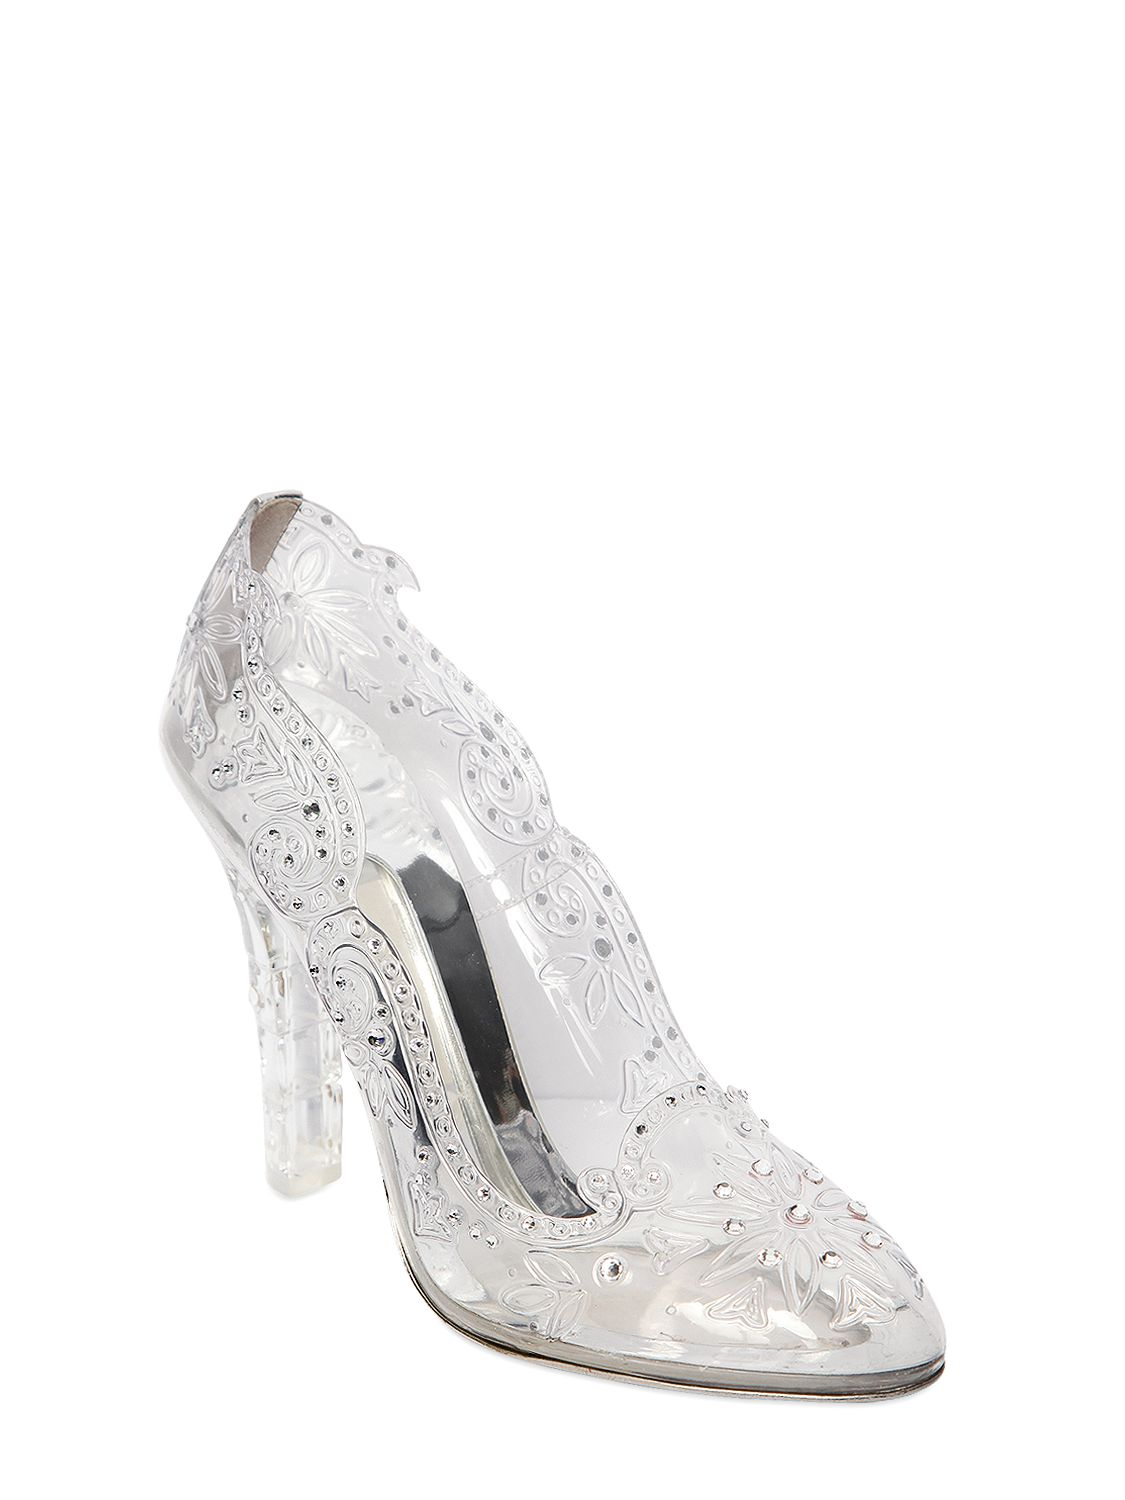 Shop Offer Online Recommend transparent Bette 105 PVC crystal pumps Dolce & Gabbana Browse Online Buy Cheap Pictures Exclusive nQrY3Guv